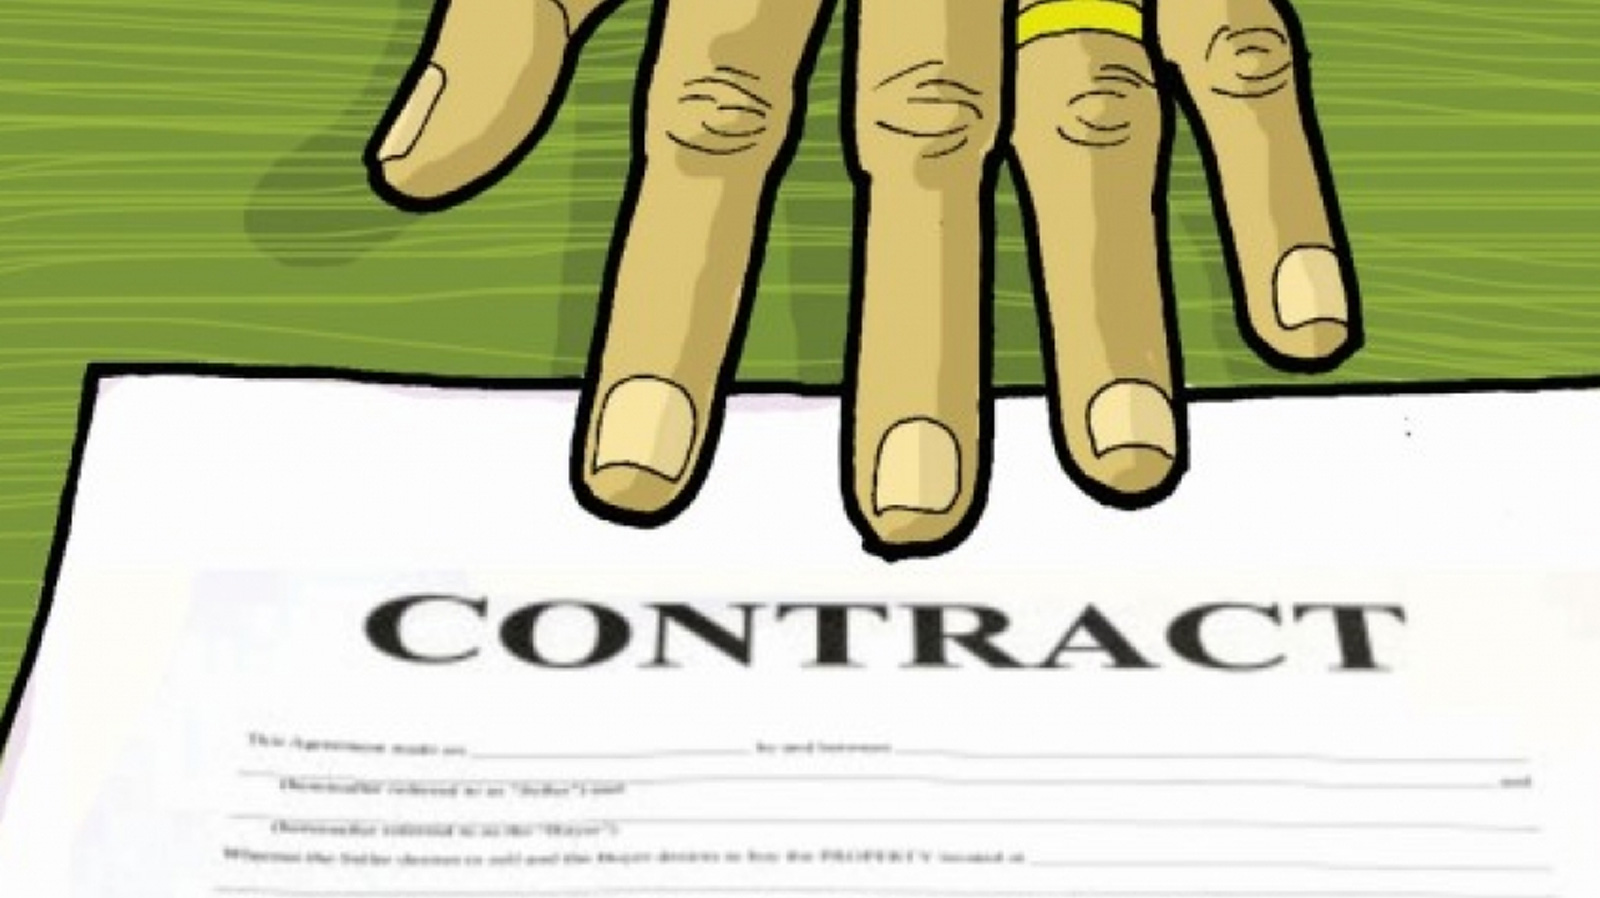 CONTRACT OF EMPLOYMENT: PROTECTION OF EMPLOYEES